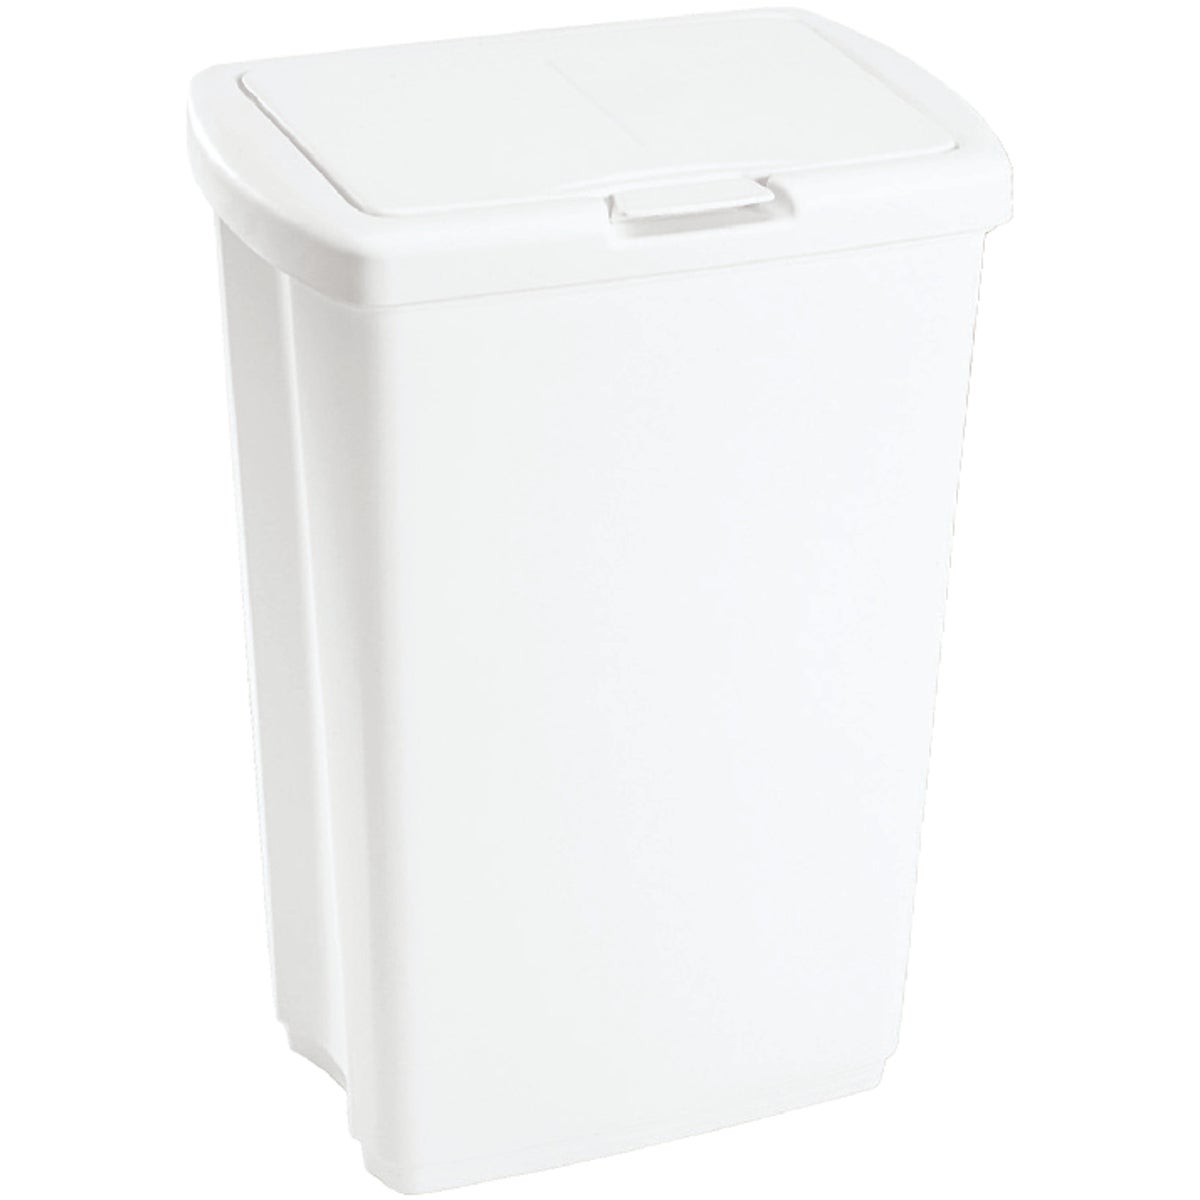 53QT WHITE WASTEBASKET - 233900-WHT by Rubbermaid Home